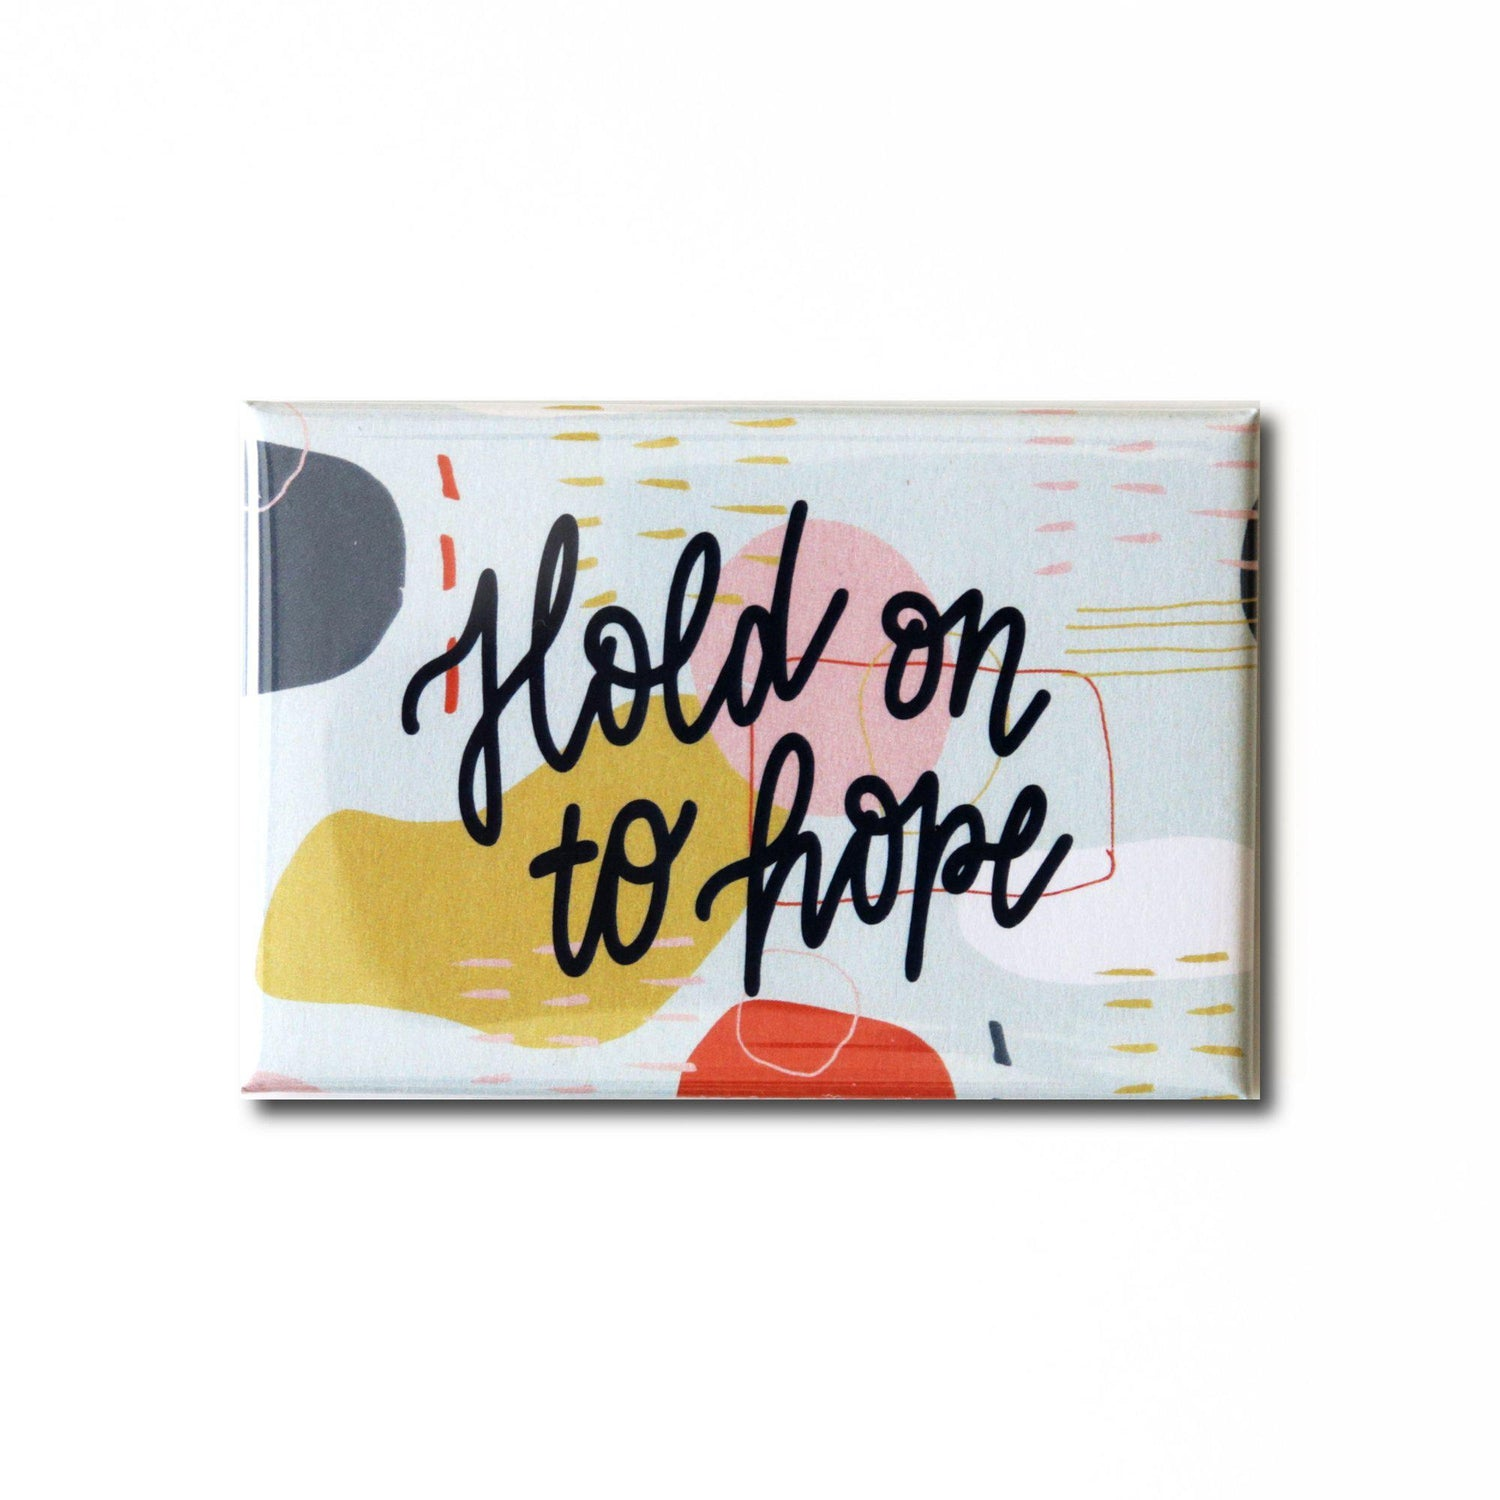 Hold on to Hope Magnet from Muscadine Press.